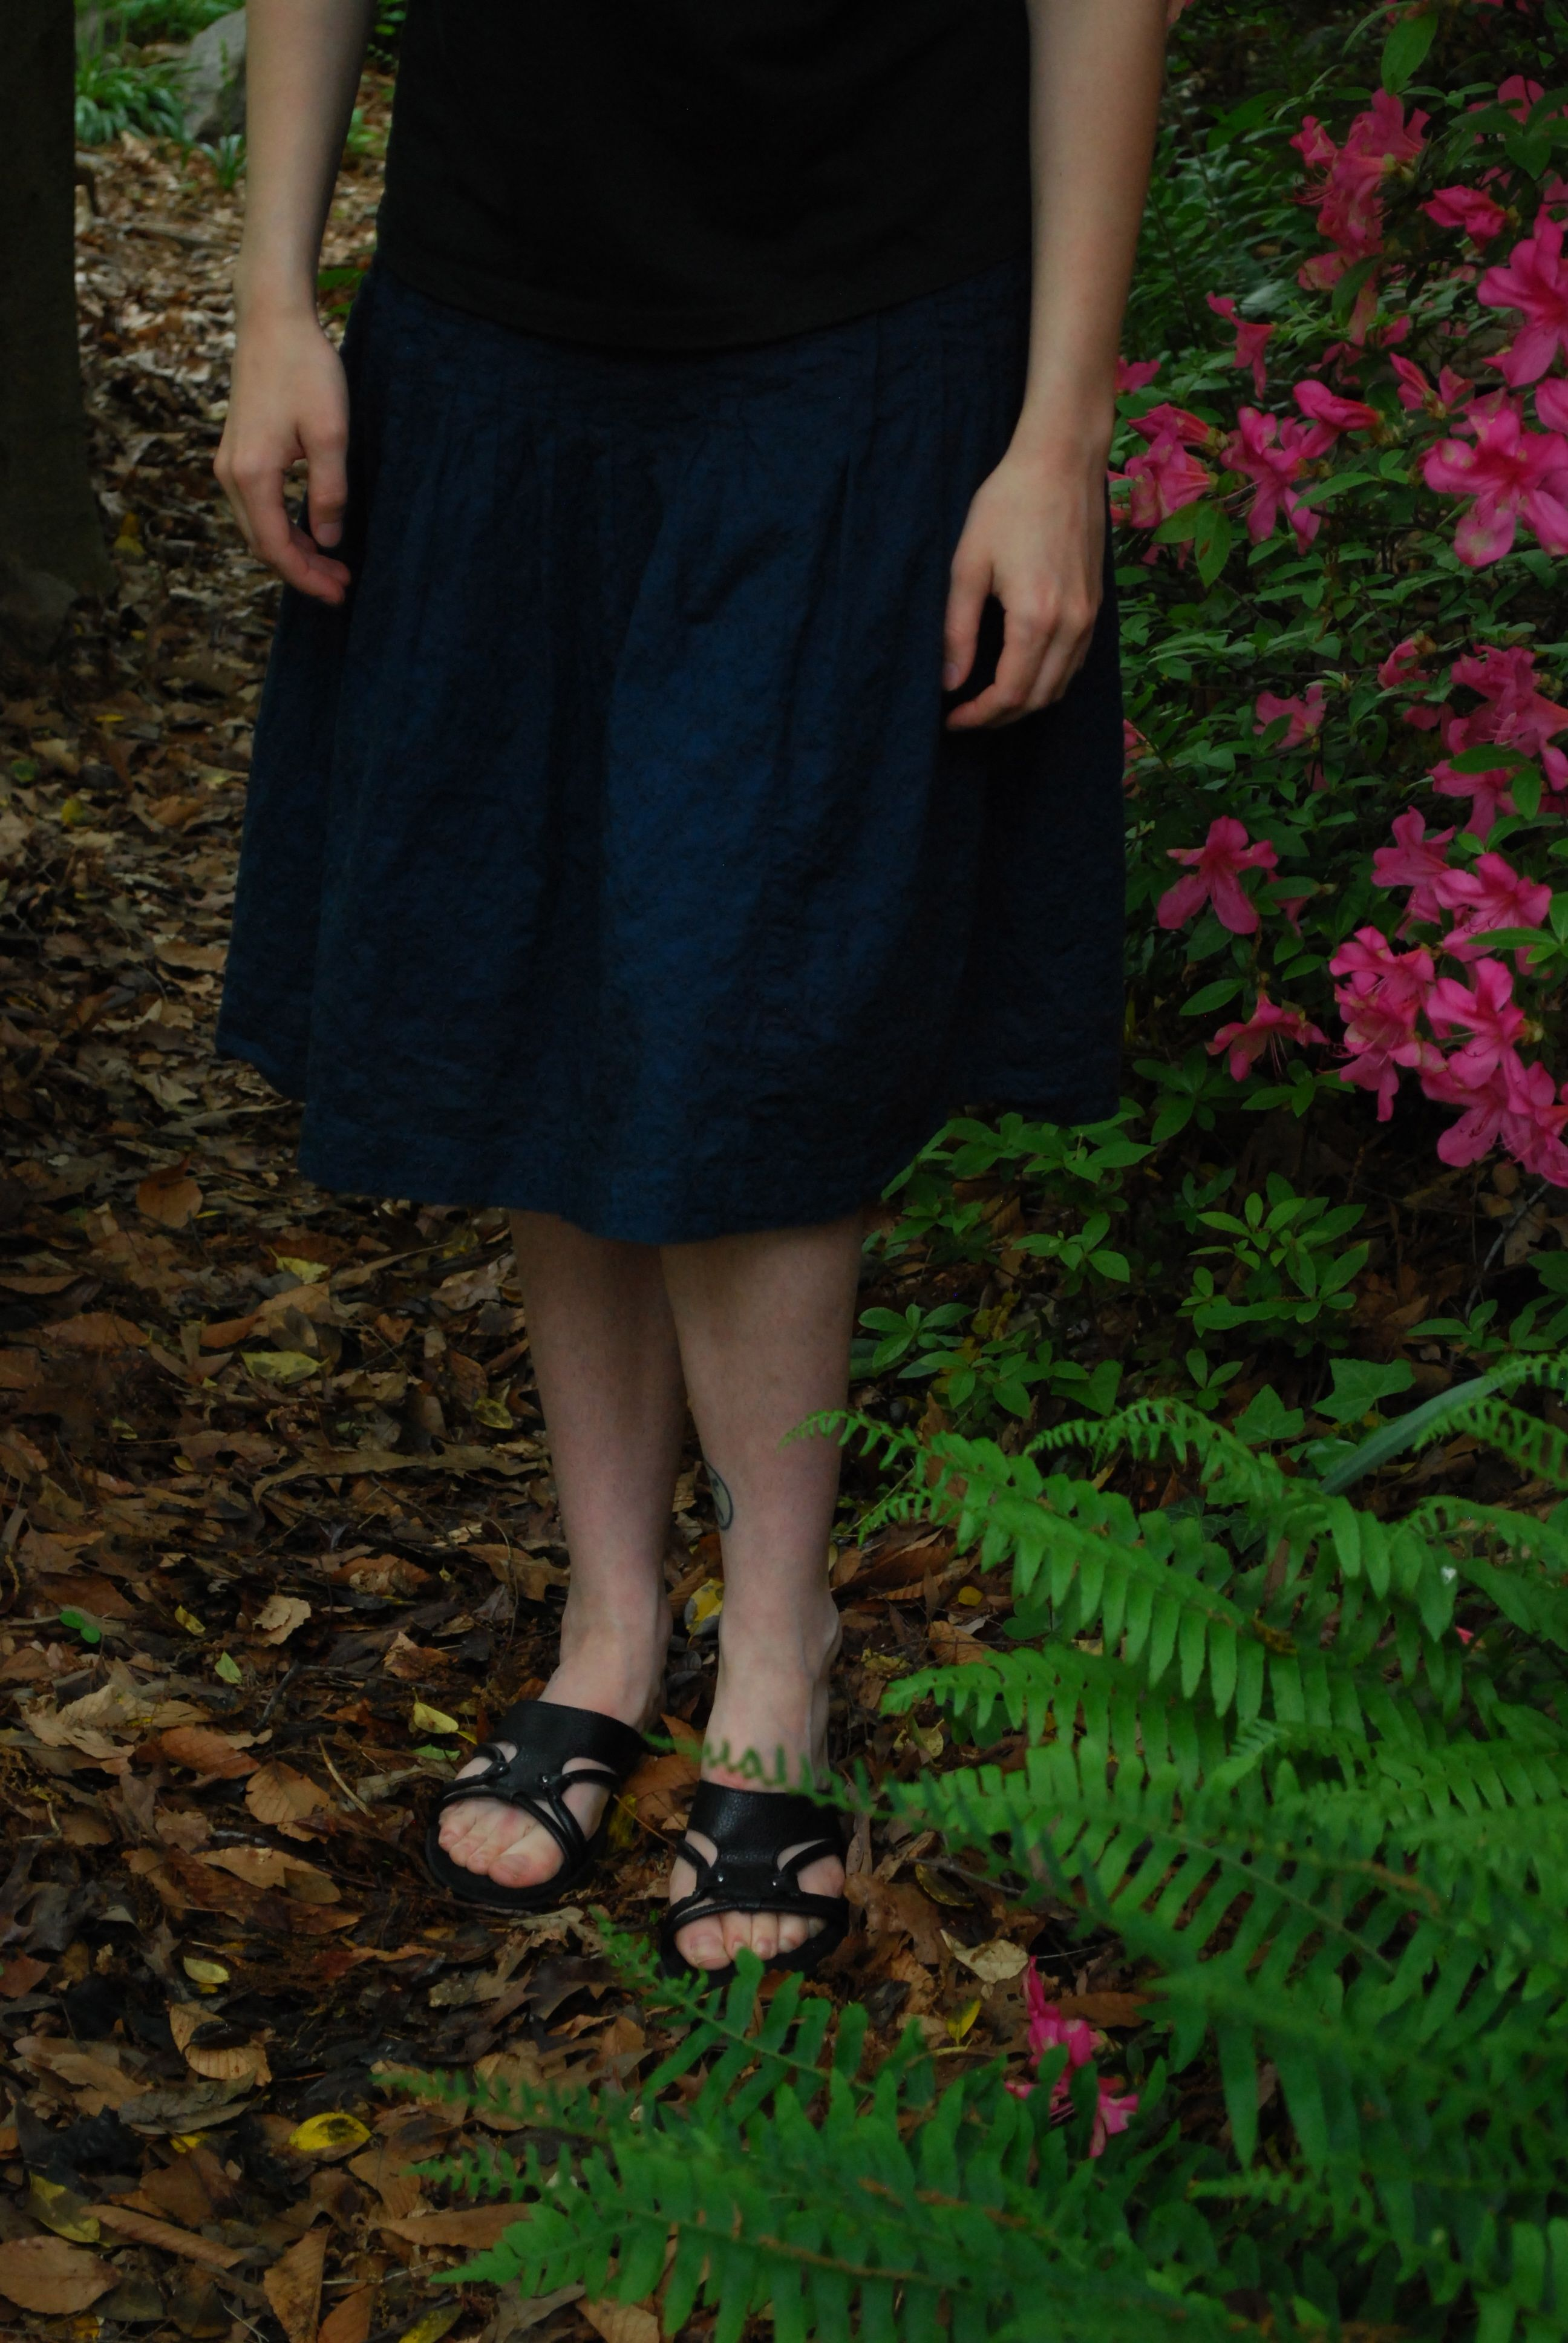 Navy skirt (Banana Republic), gorgeous black sandals (Aerosoles), black fitted t-shirt (bella)